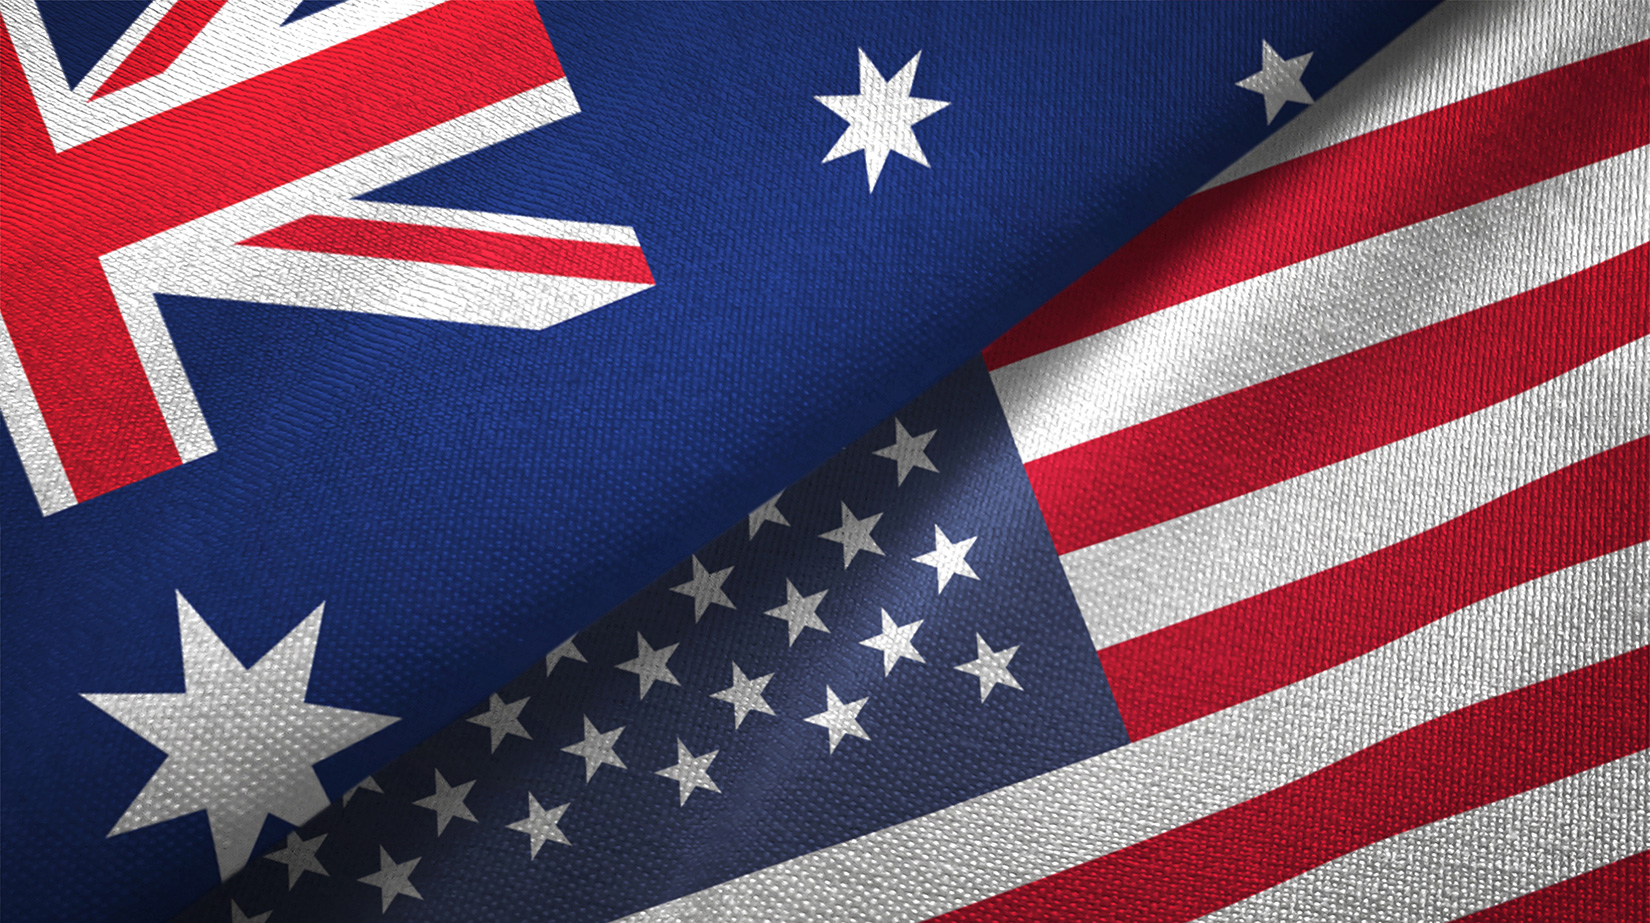 Abandoned and Alone: Lamenting the US-Australian Alliance